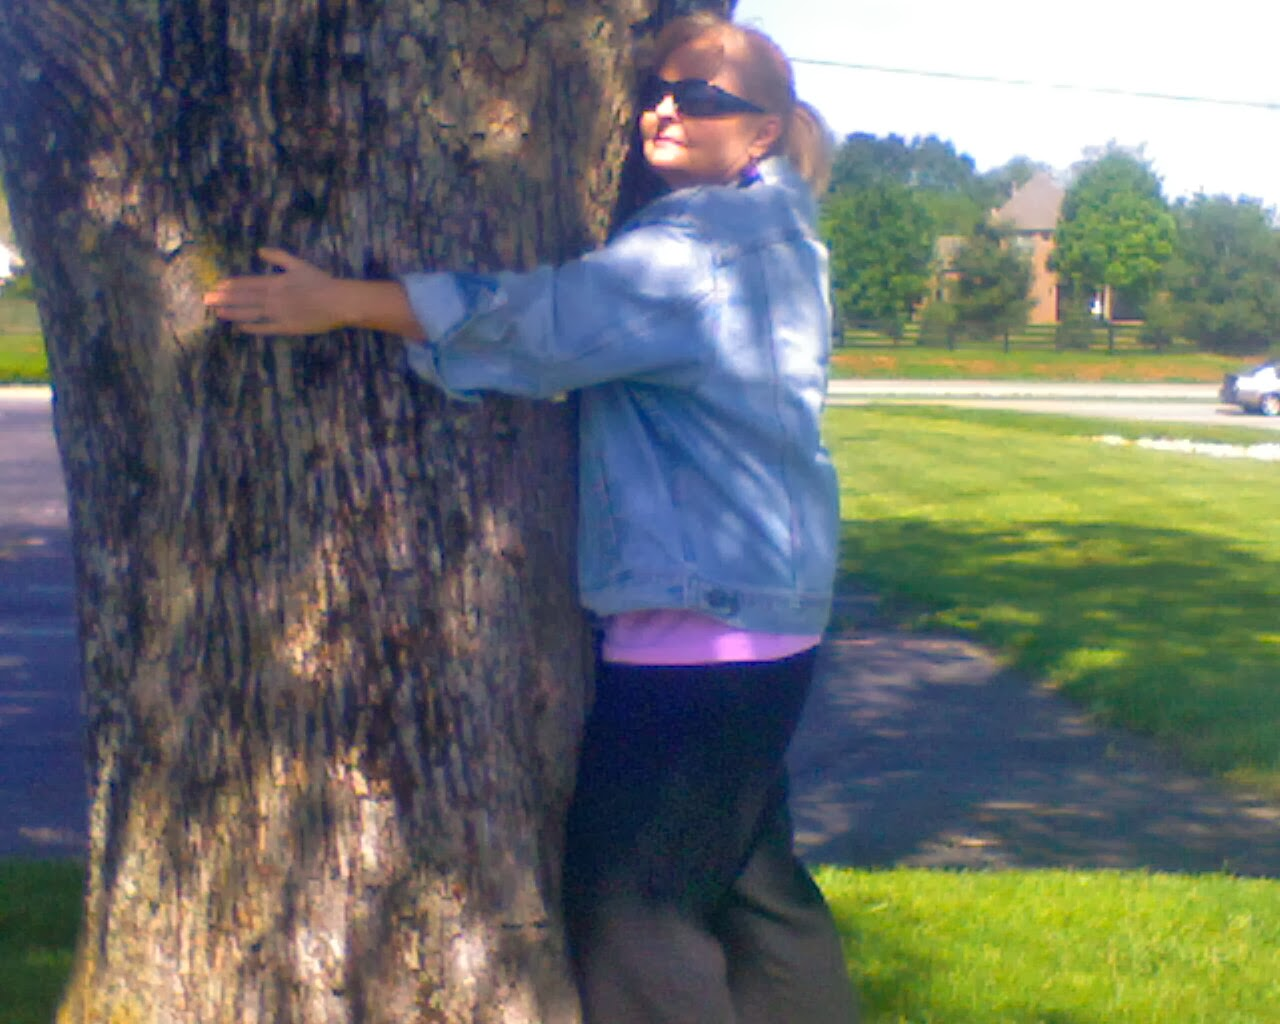 I love to hug trees.